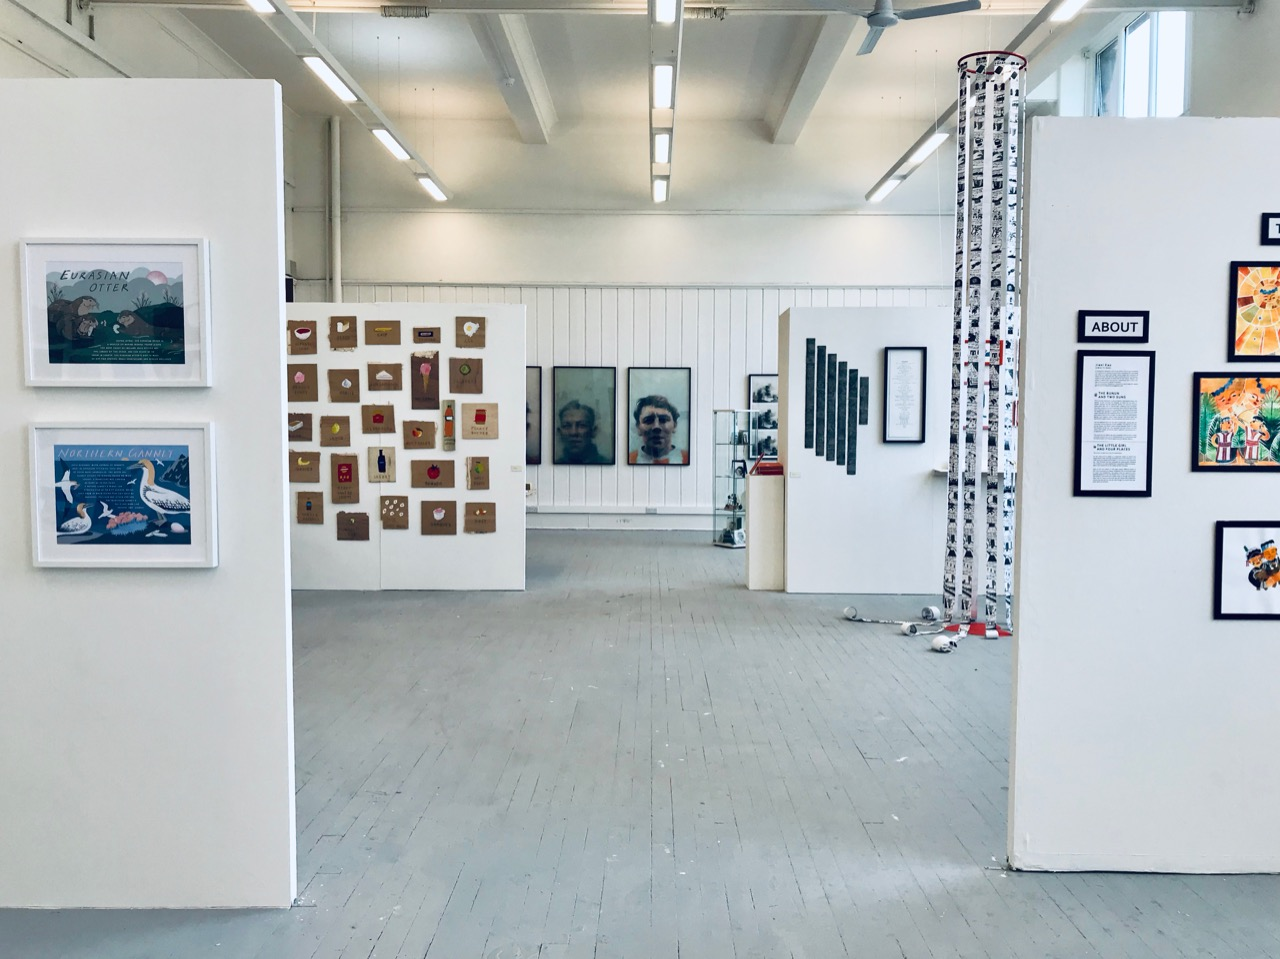 Edinburgh College Of Art Summer At Eca Exhibition Artmag